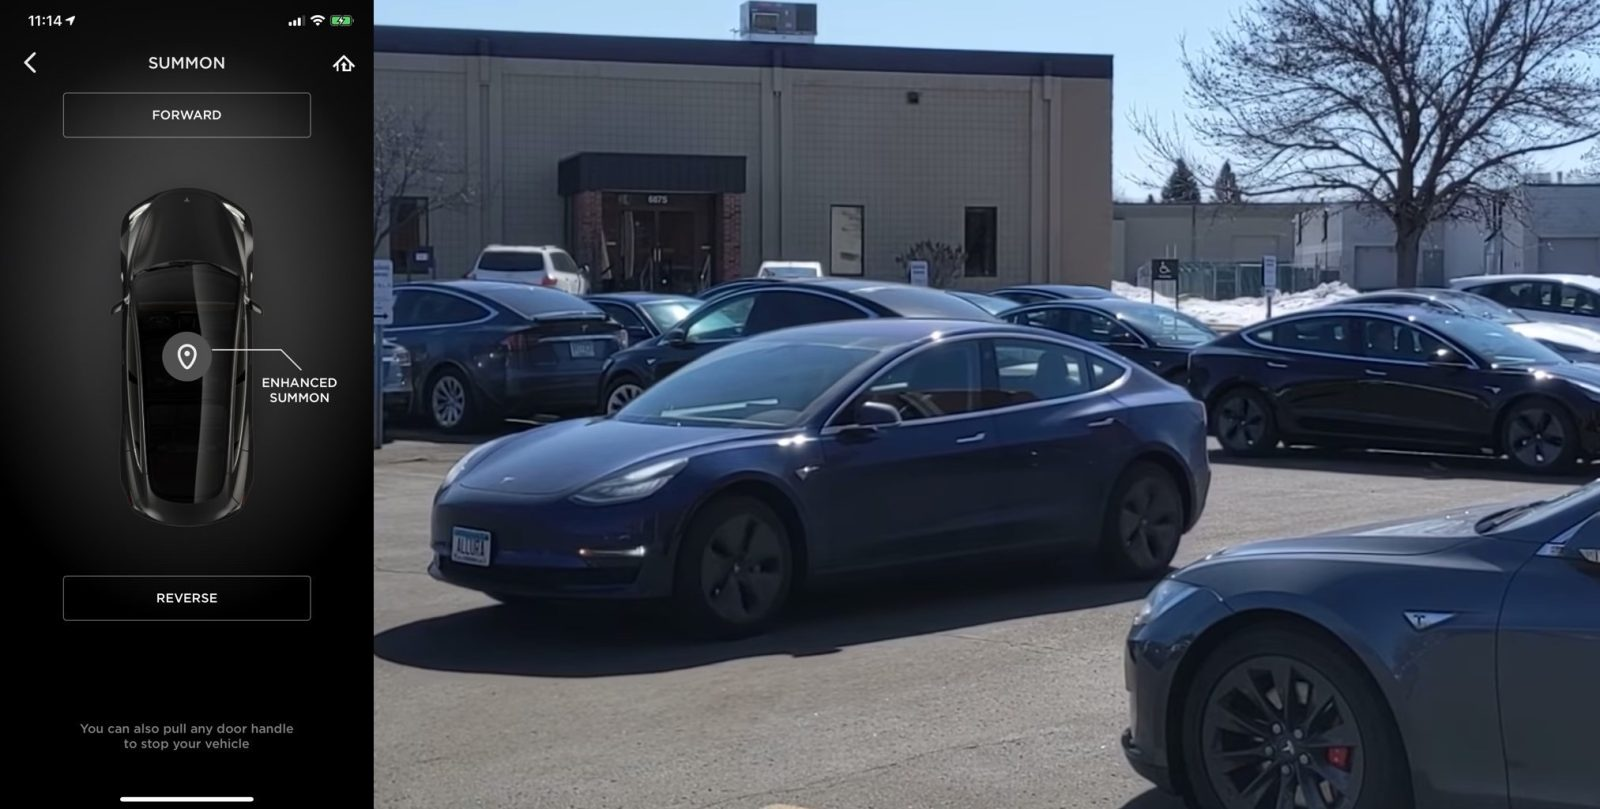 Watch Tesla's much improved driverless Enhanced Summons in action